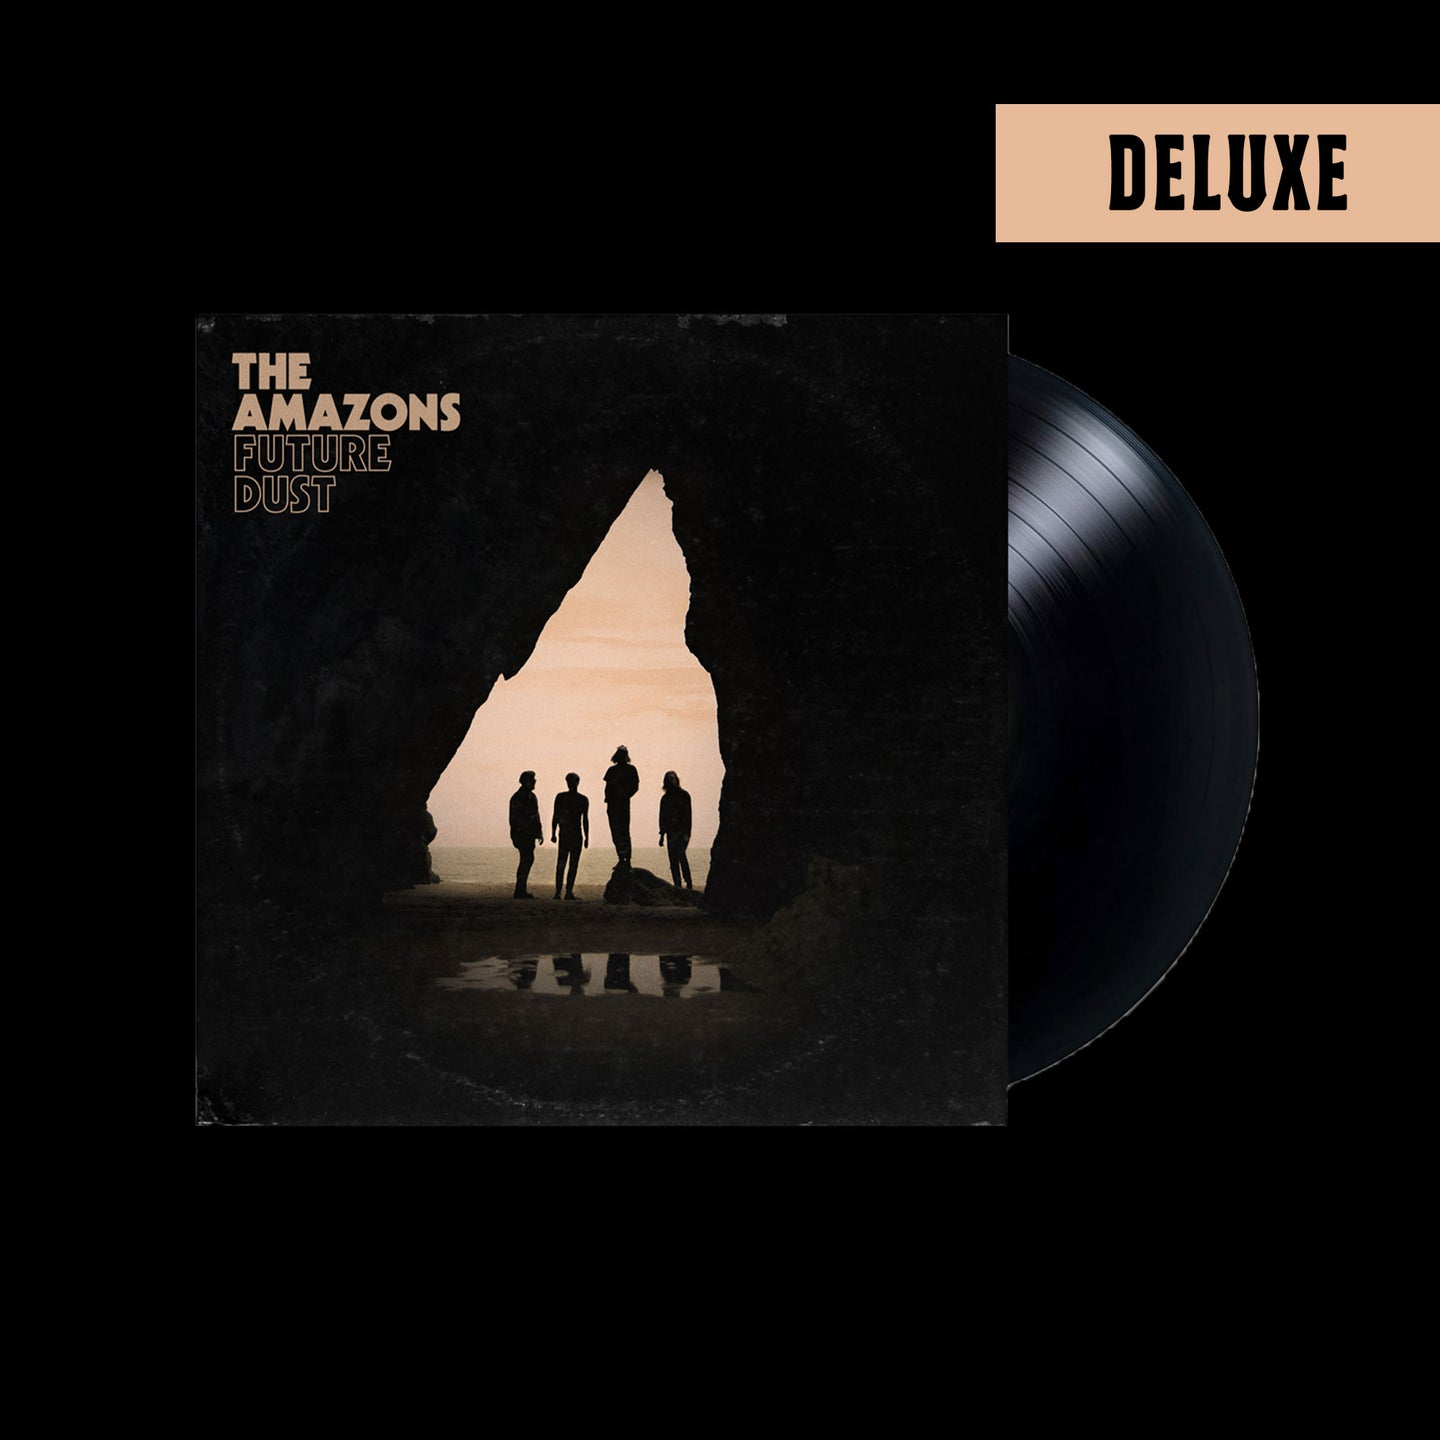 The Amazons Future Dust Deluxe Vinyl